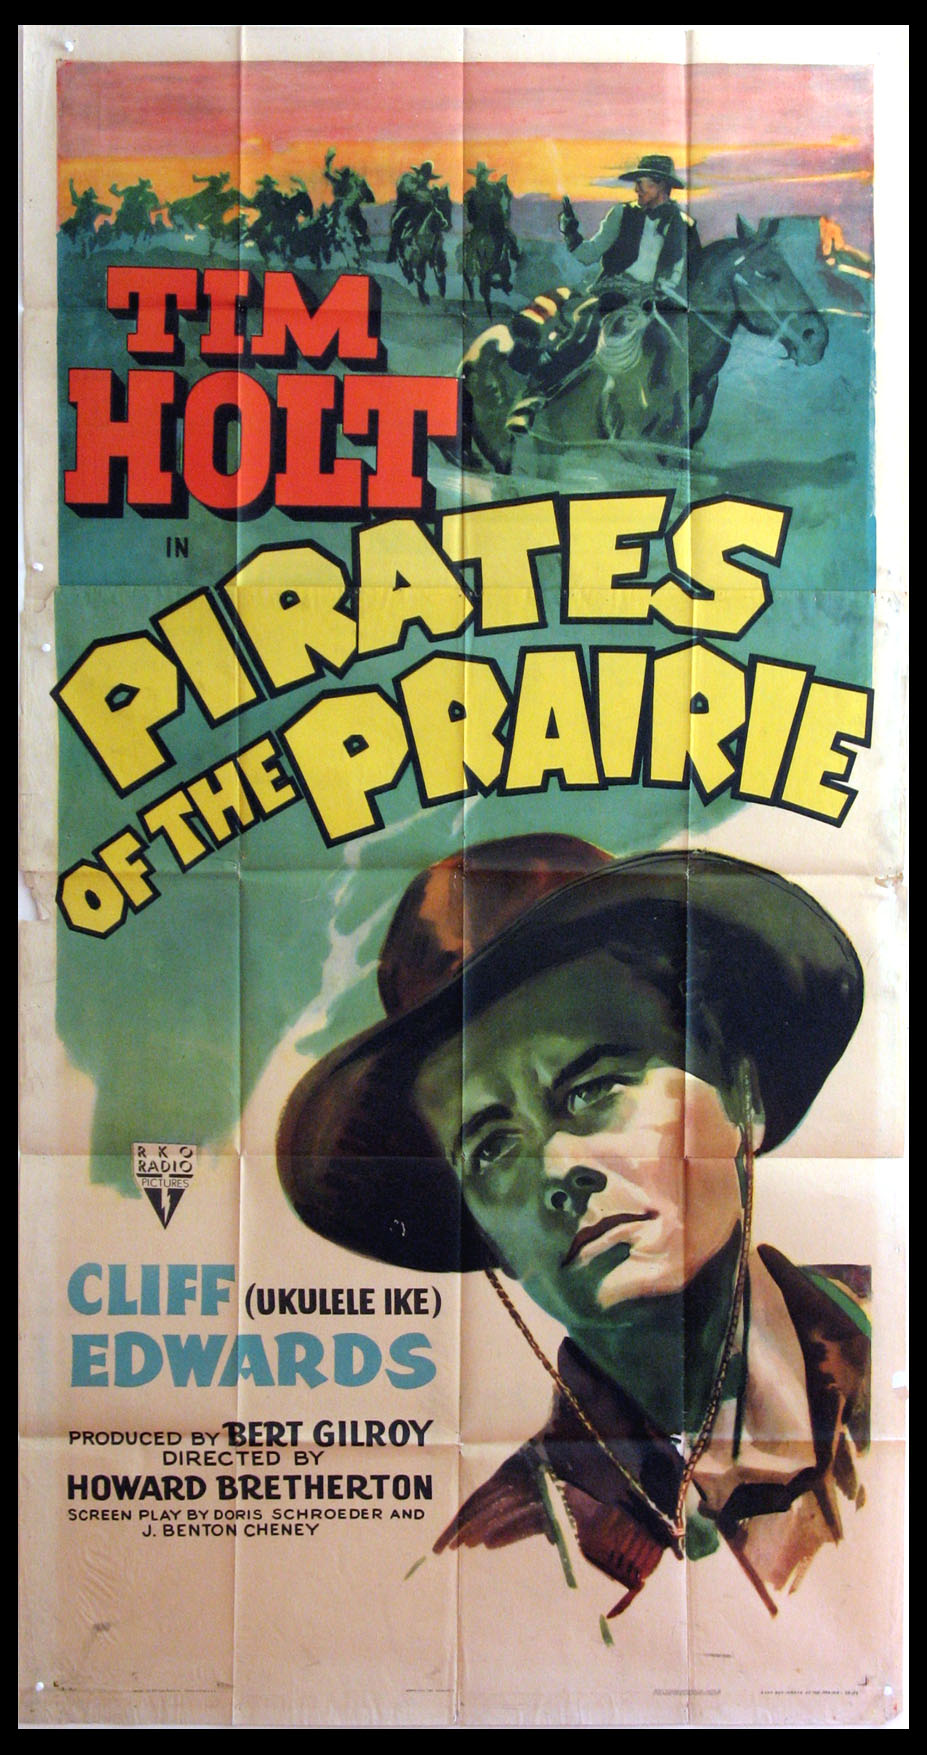 PIRATES OF THE PRAIRIE @ FilmPosters.com